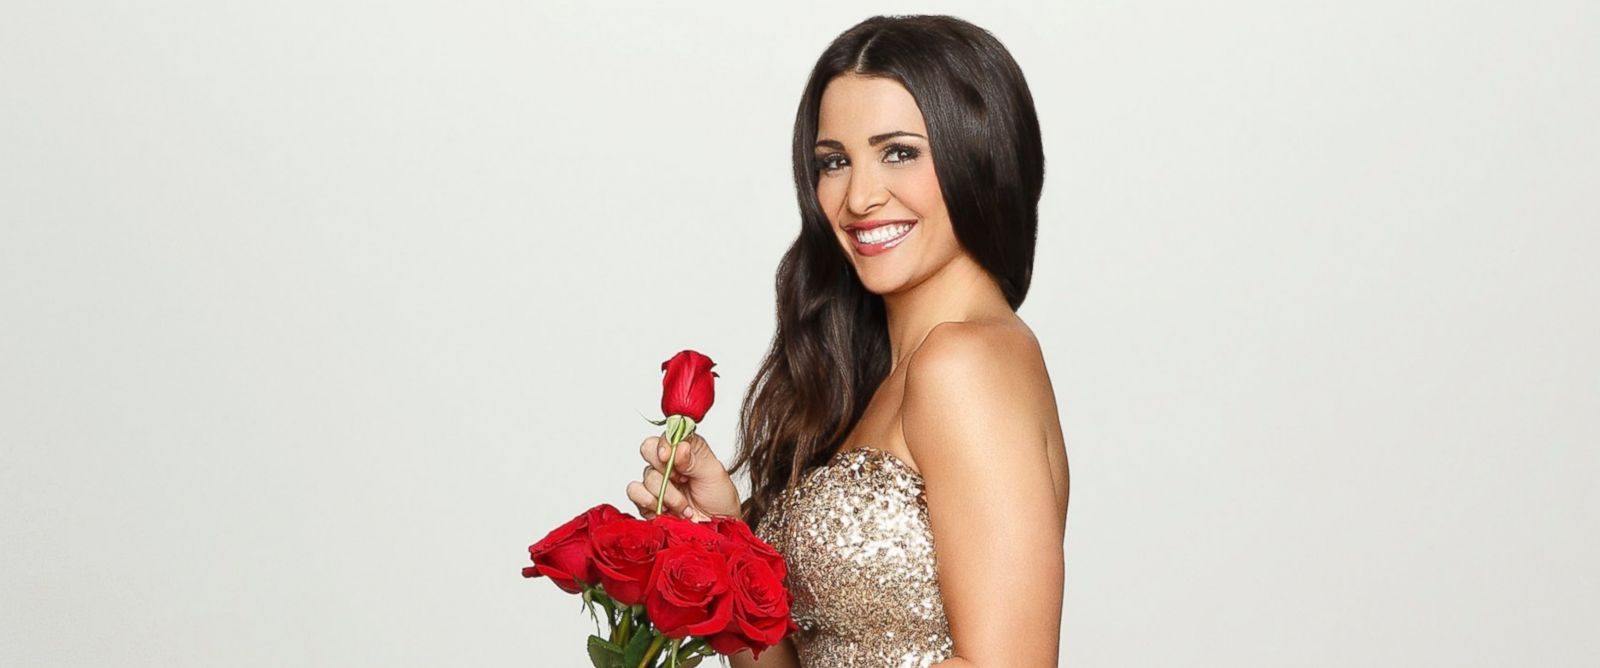 """PHOTO: Andi Dorfman will embark on her journey to find love when she stars in the tenth edition of """"The Bachelorette,"""" which will premiere May 19, 2014 on the ABC Television Network."""